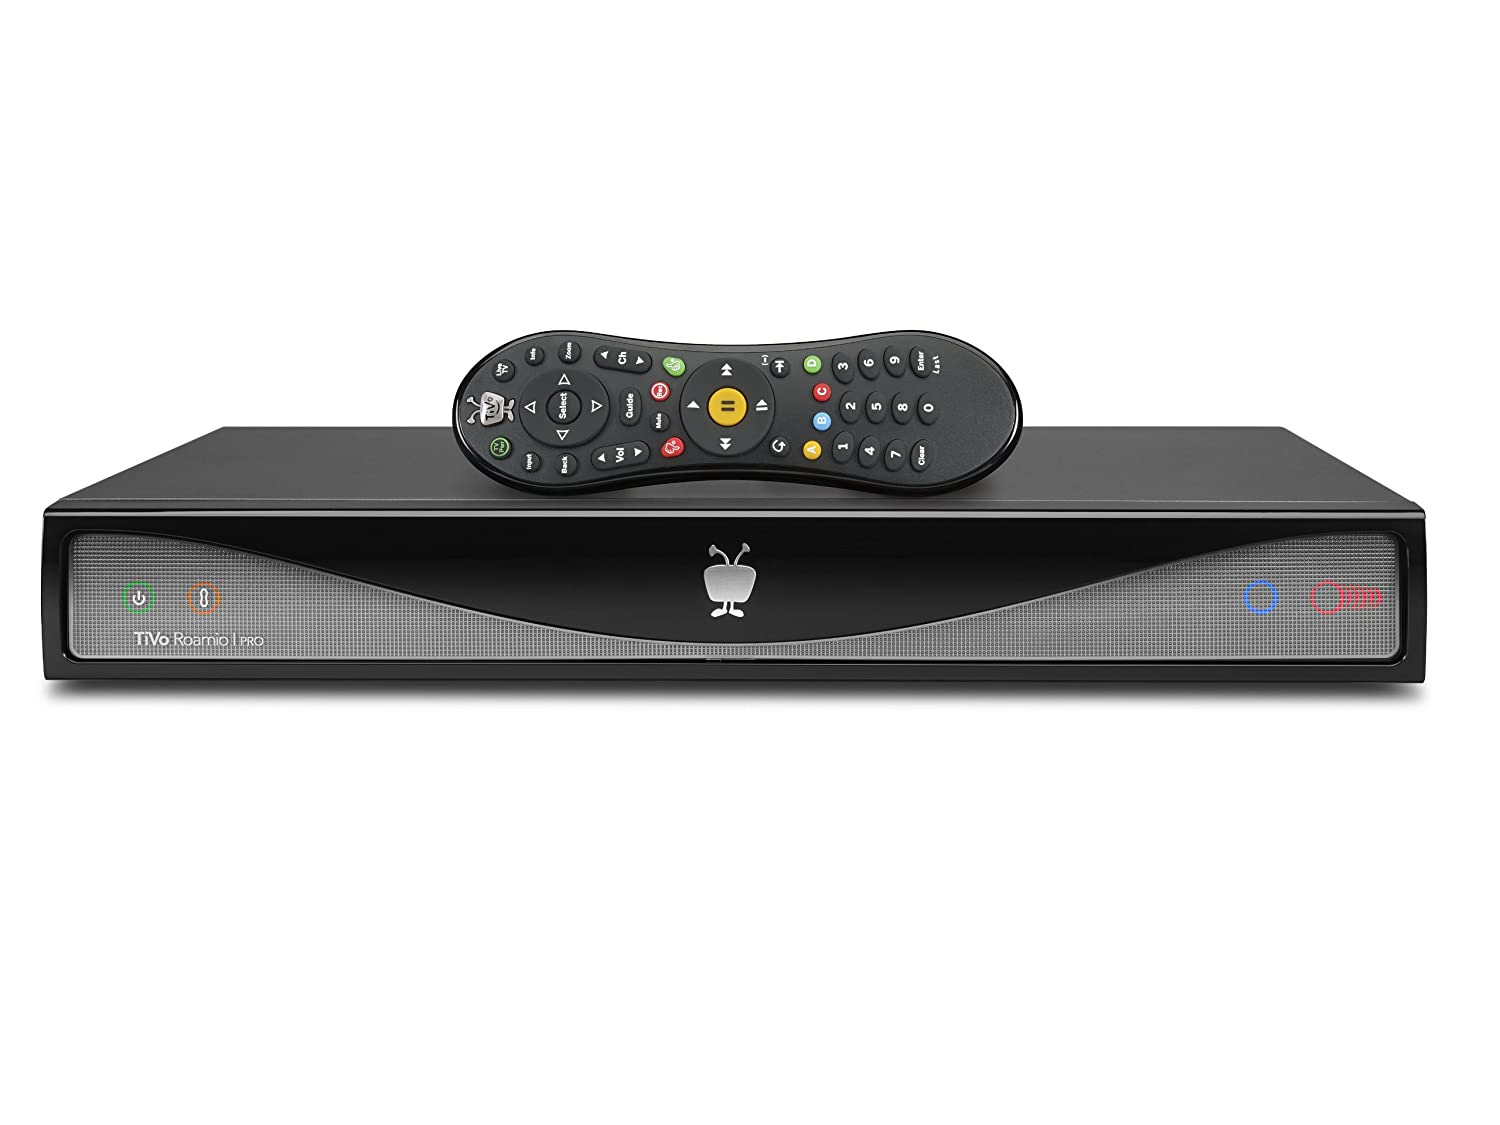 TiVo Roamio Pro HD Digital Video Recorder and Streaming Media Player TCD840300